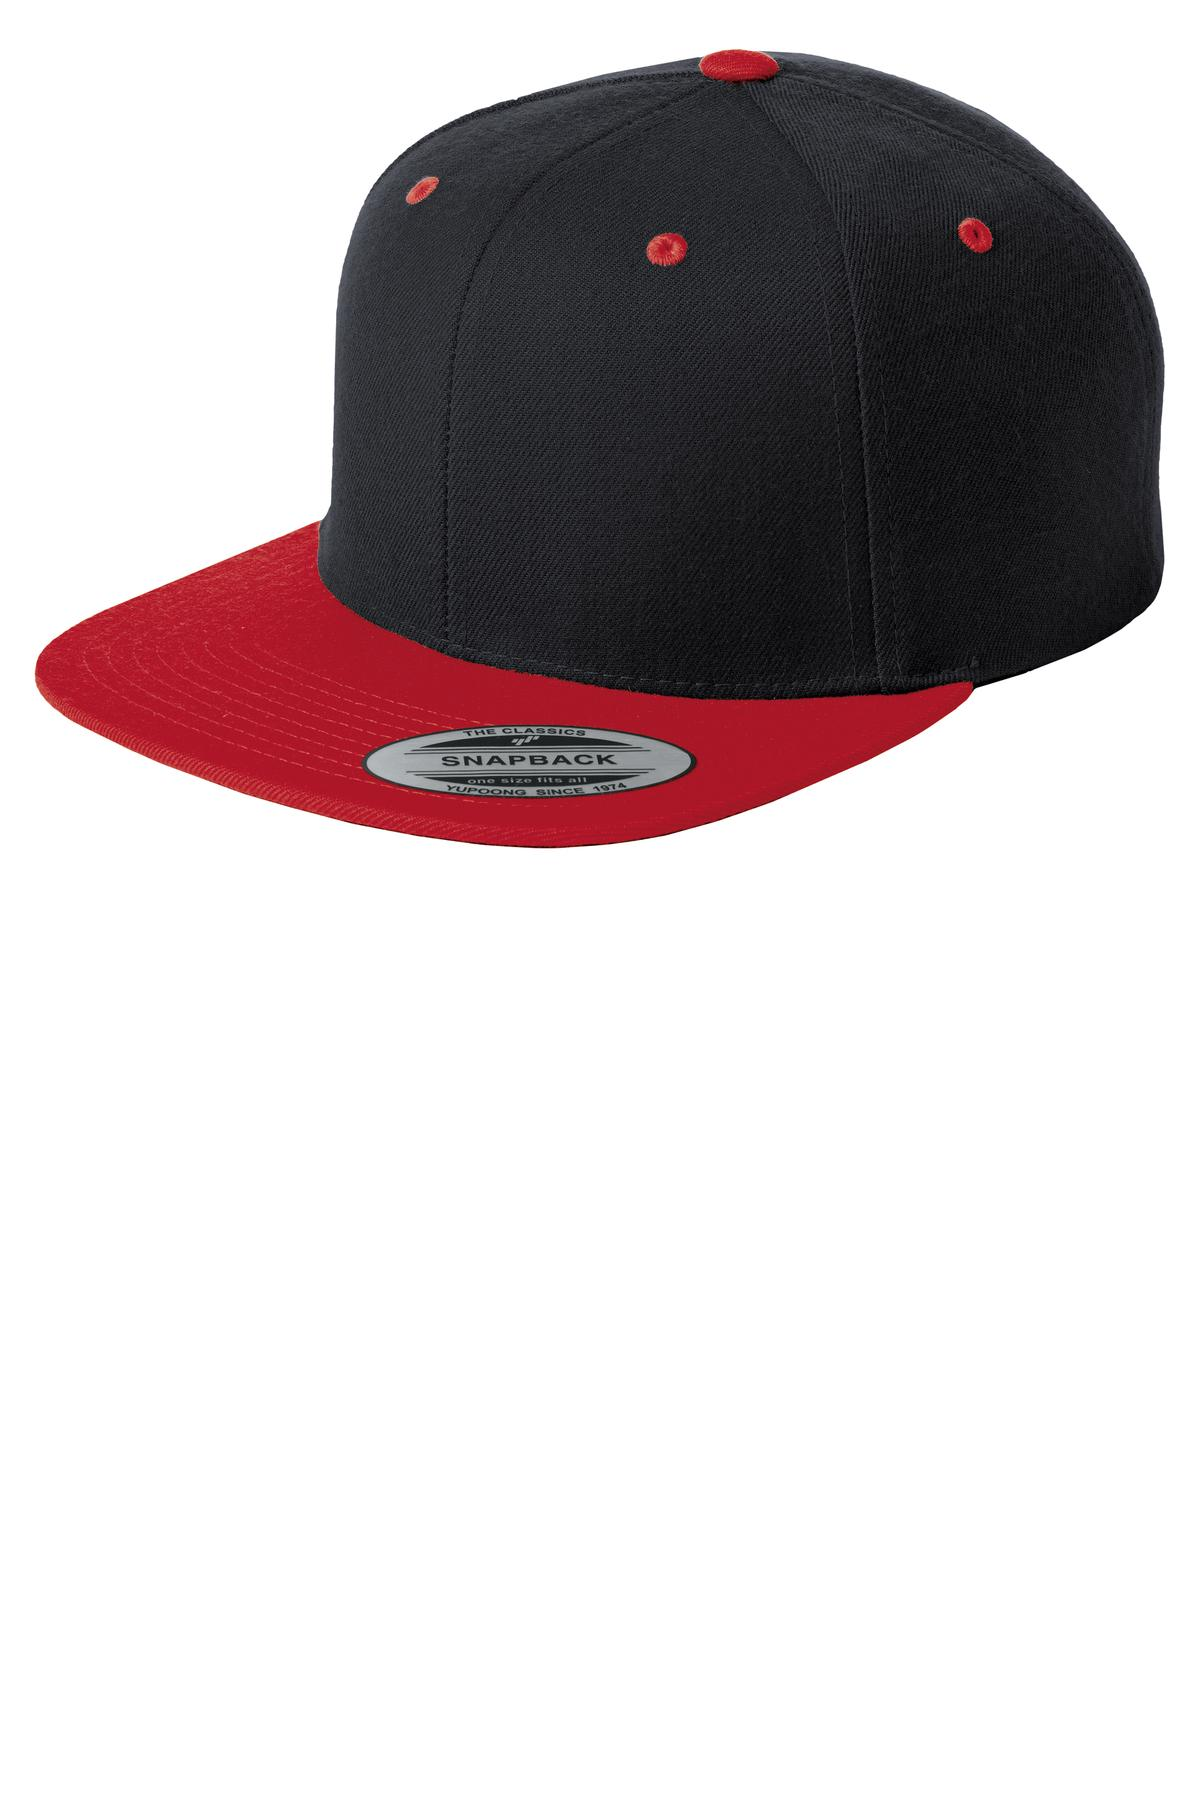 Sport-Tek ®  Yupoong ®  Flat Bill Snapback Cap. STC19 - Black/ True Red